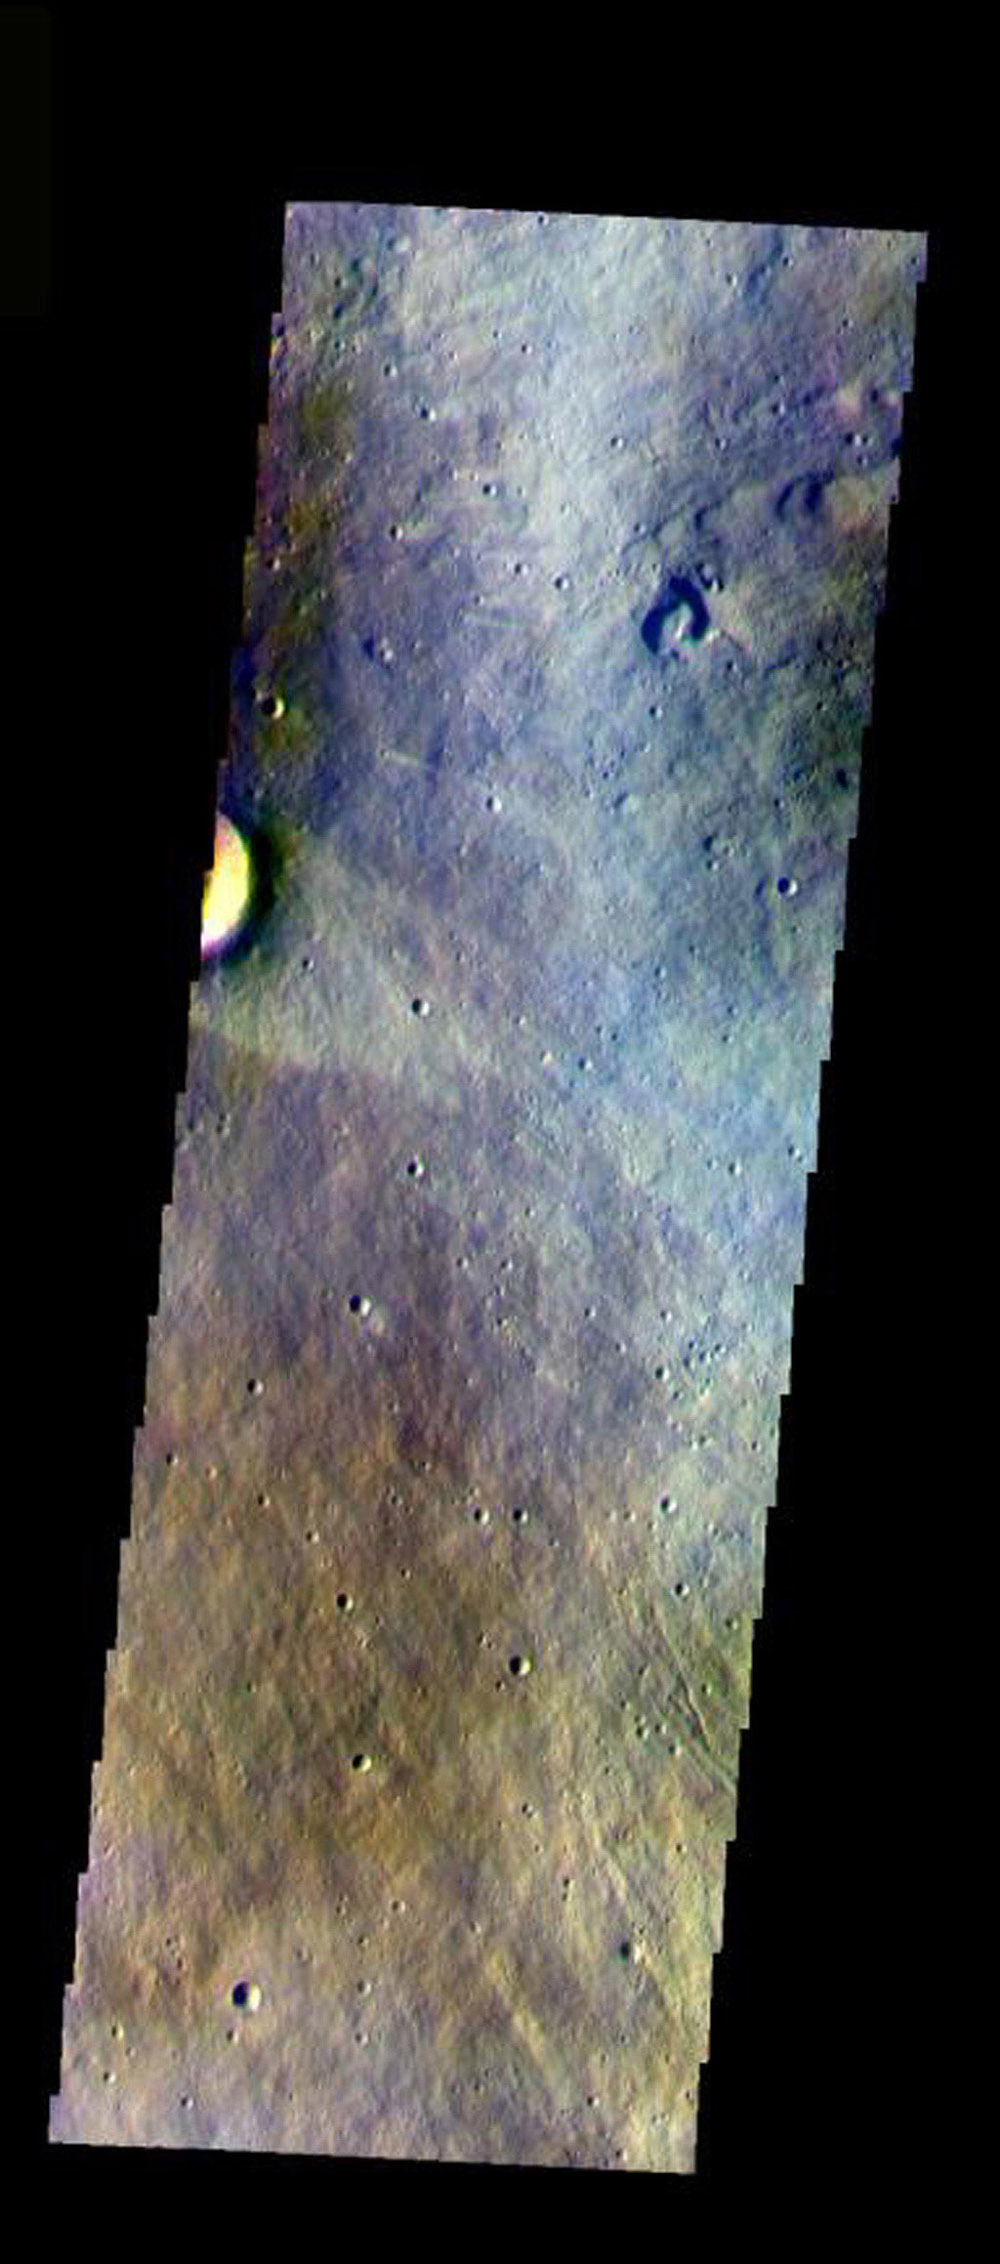 This false-color image from NASA's Mars Odyssey spacecraft shows the eastern flank of Elysium Mons volcano, taken during Mars' northern spring season.